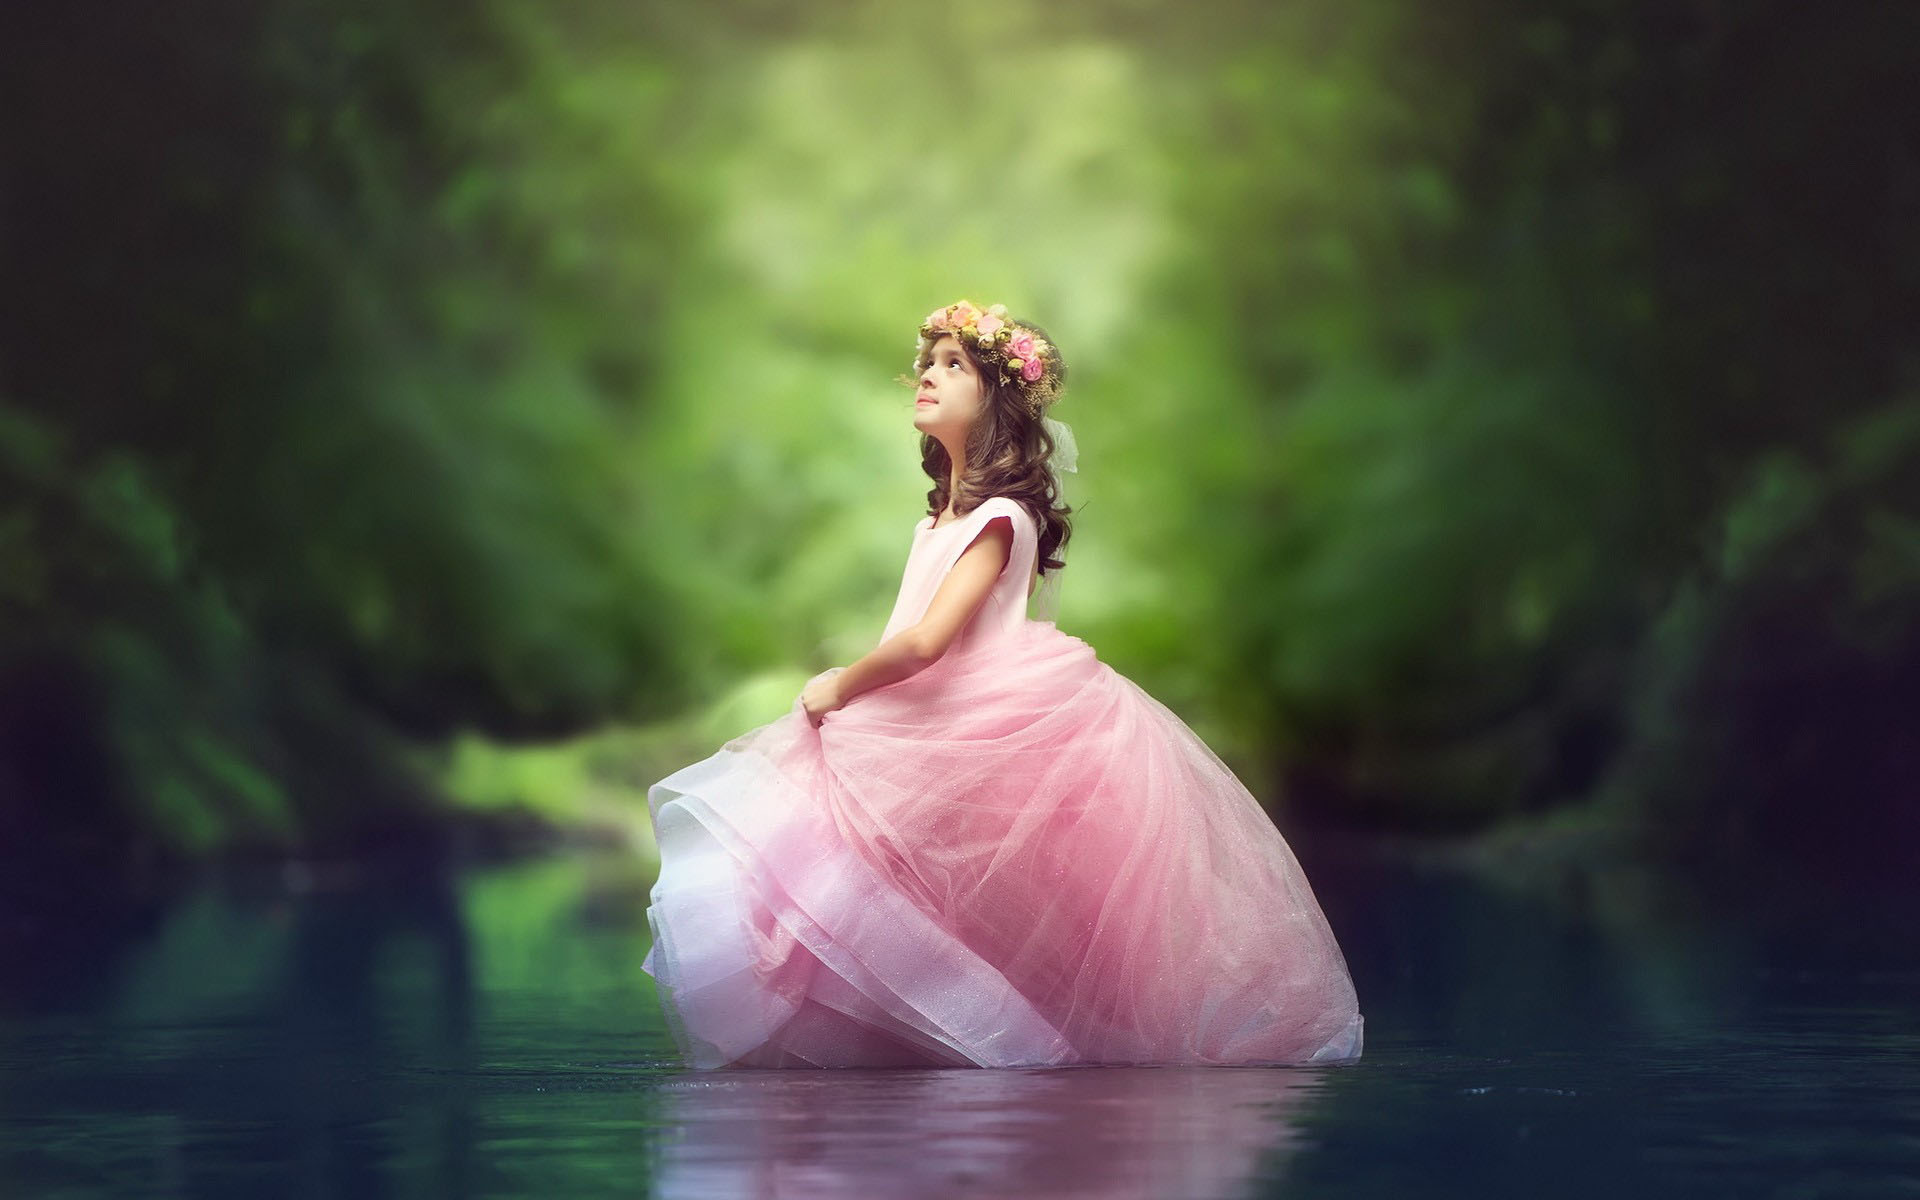 Little Princess Girl In River wallpapers